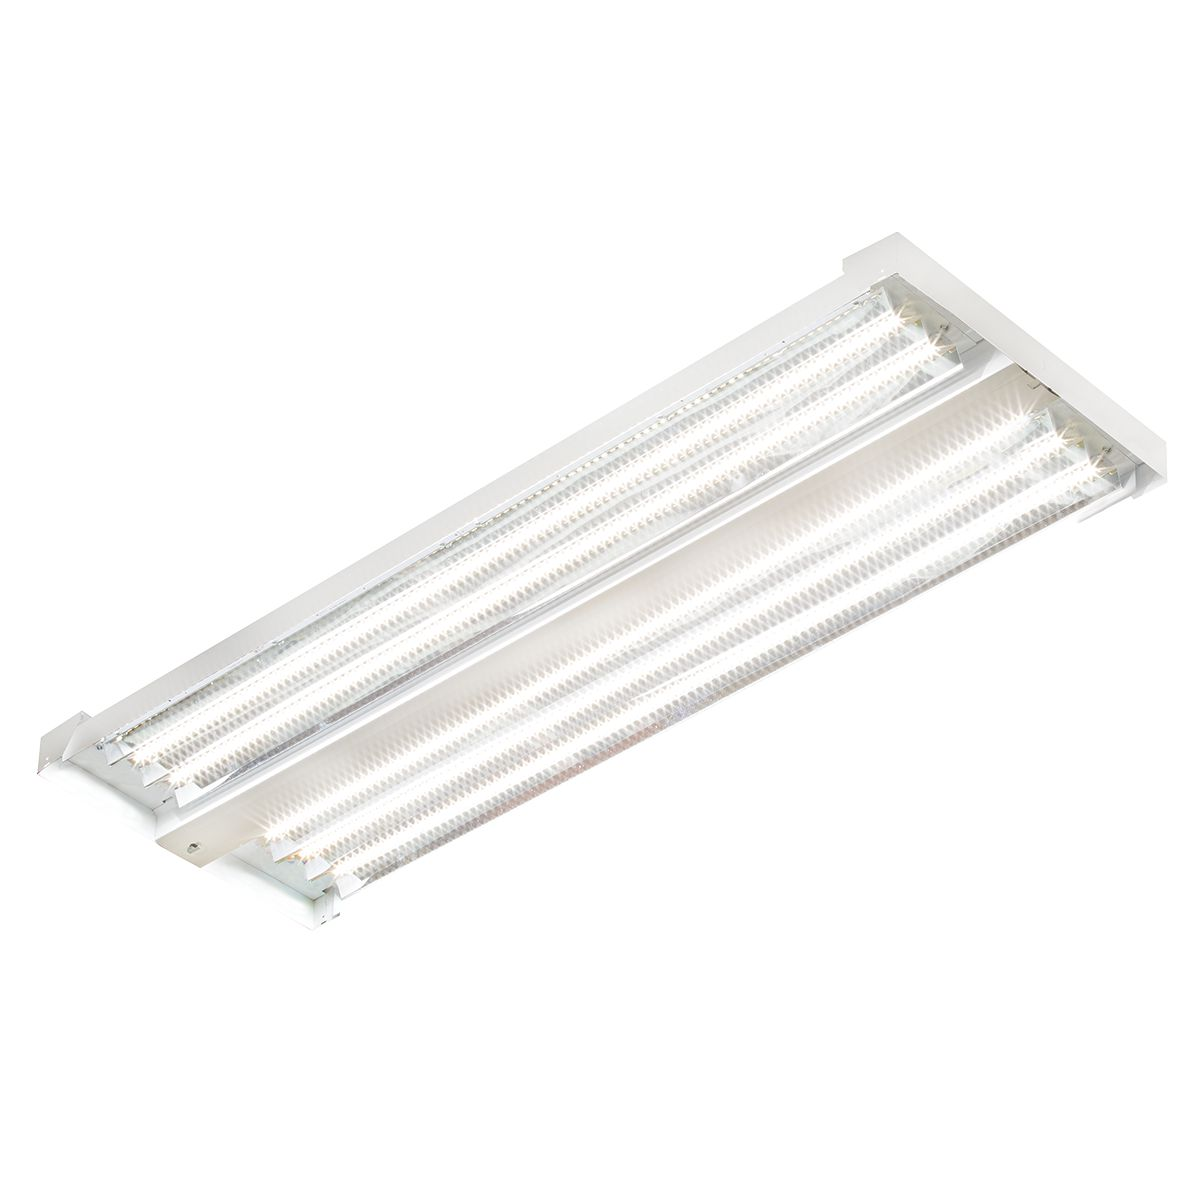 LED HBAY 4FT 4K 24653 lm WIDE DIM